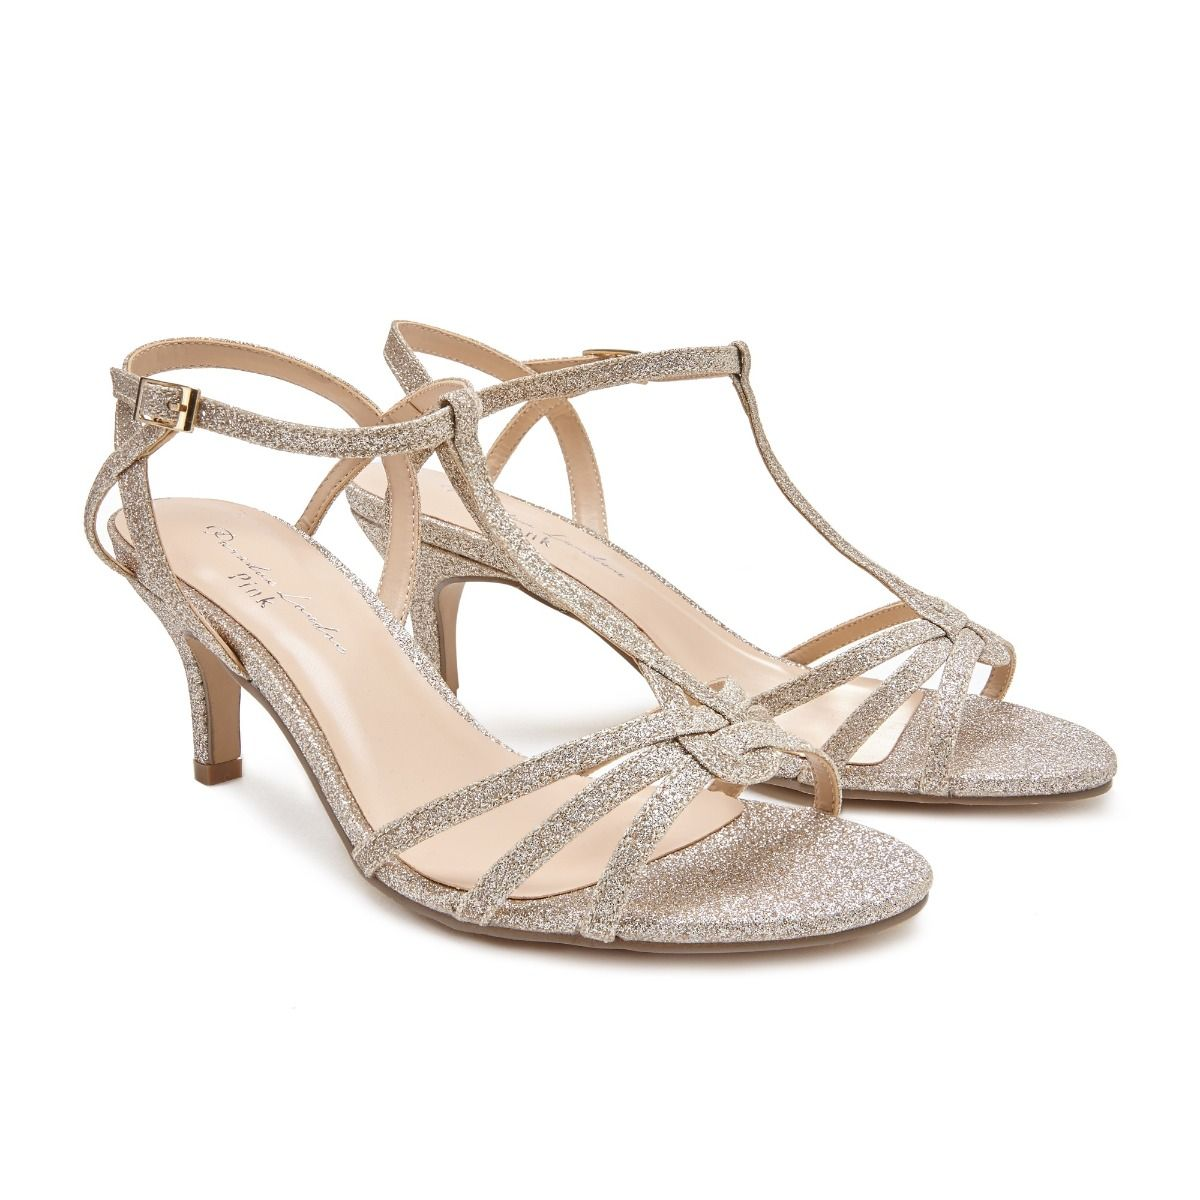 d4a9e8b4f71 Lennon Wide Fit Mid Heel Champagne Shimmer Sandal